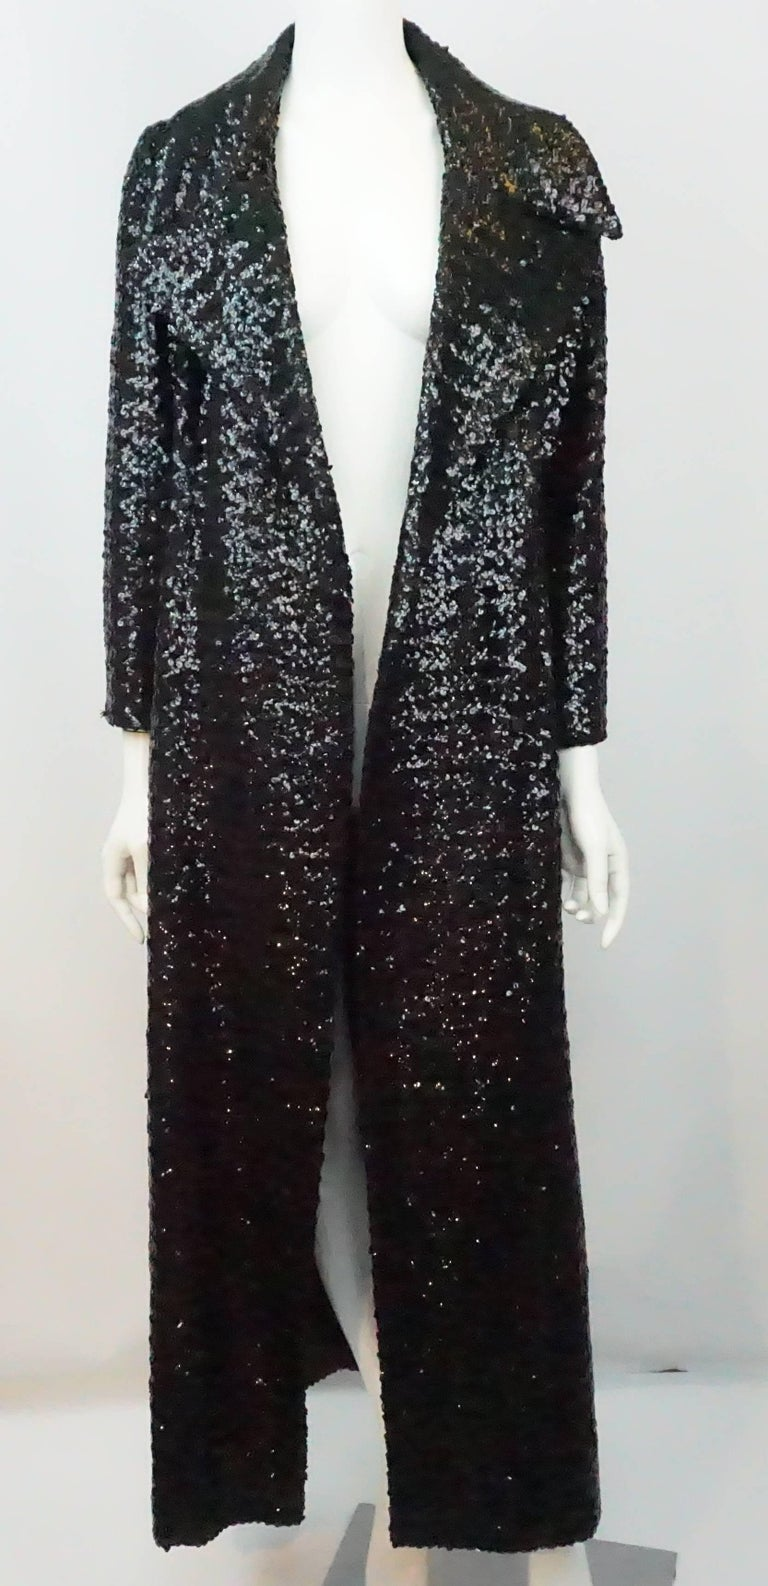 Vintage Black Sequin Full Length Trench Coat - M - Circa 70's For Sale 6